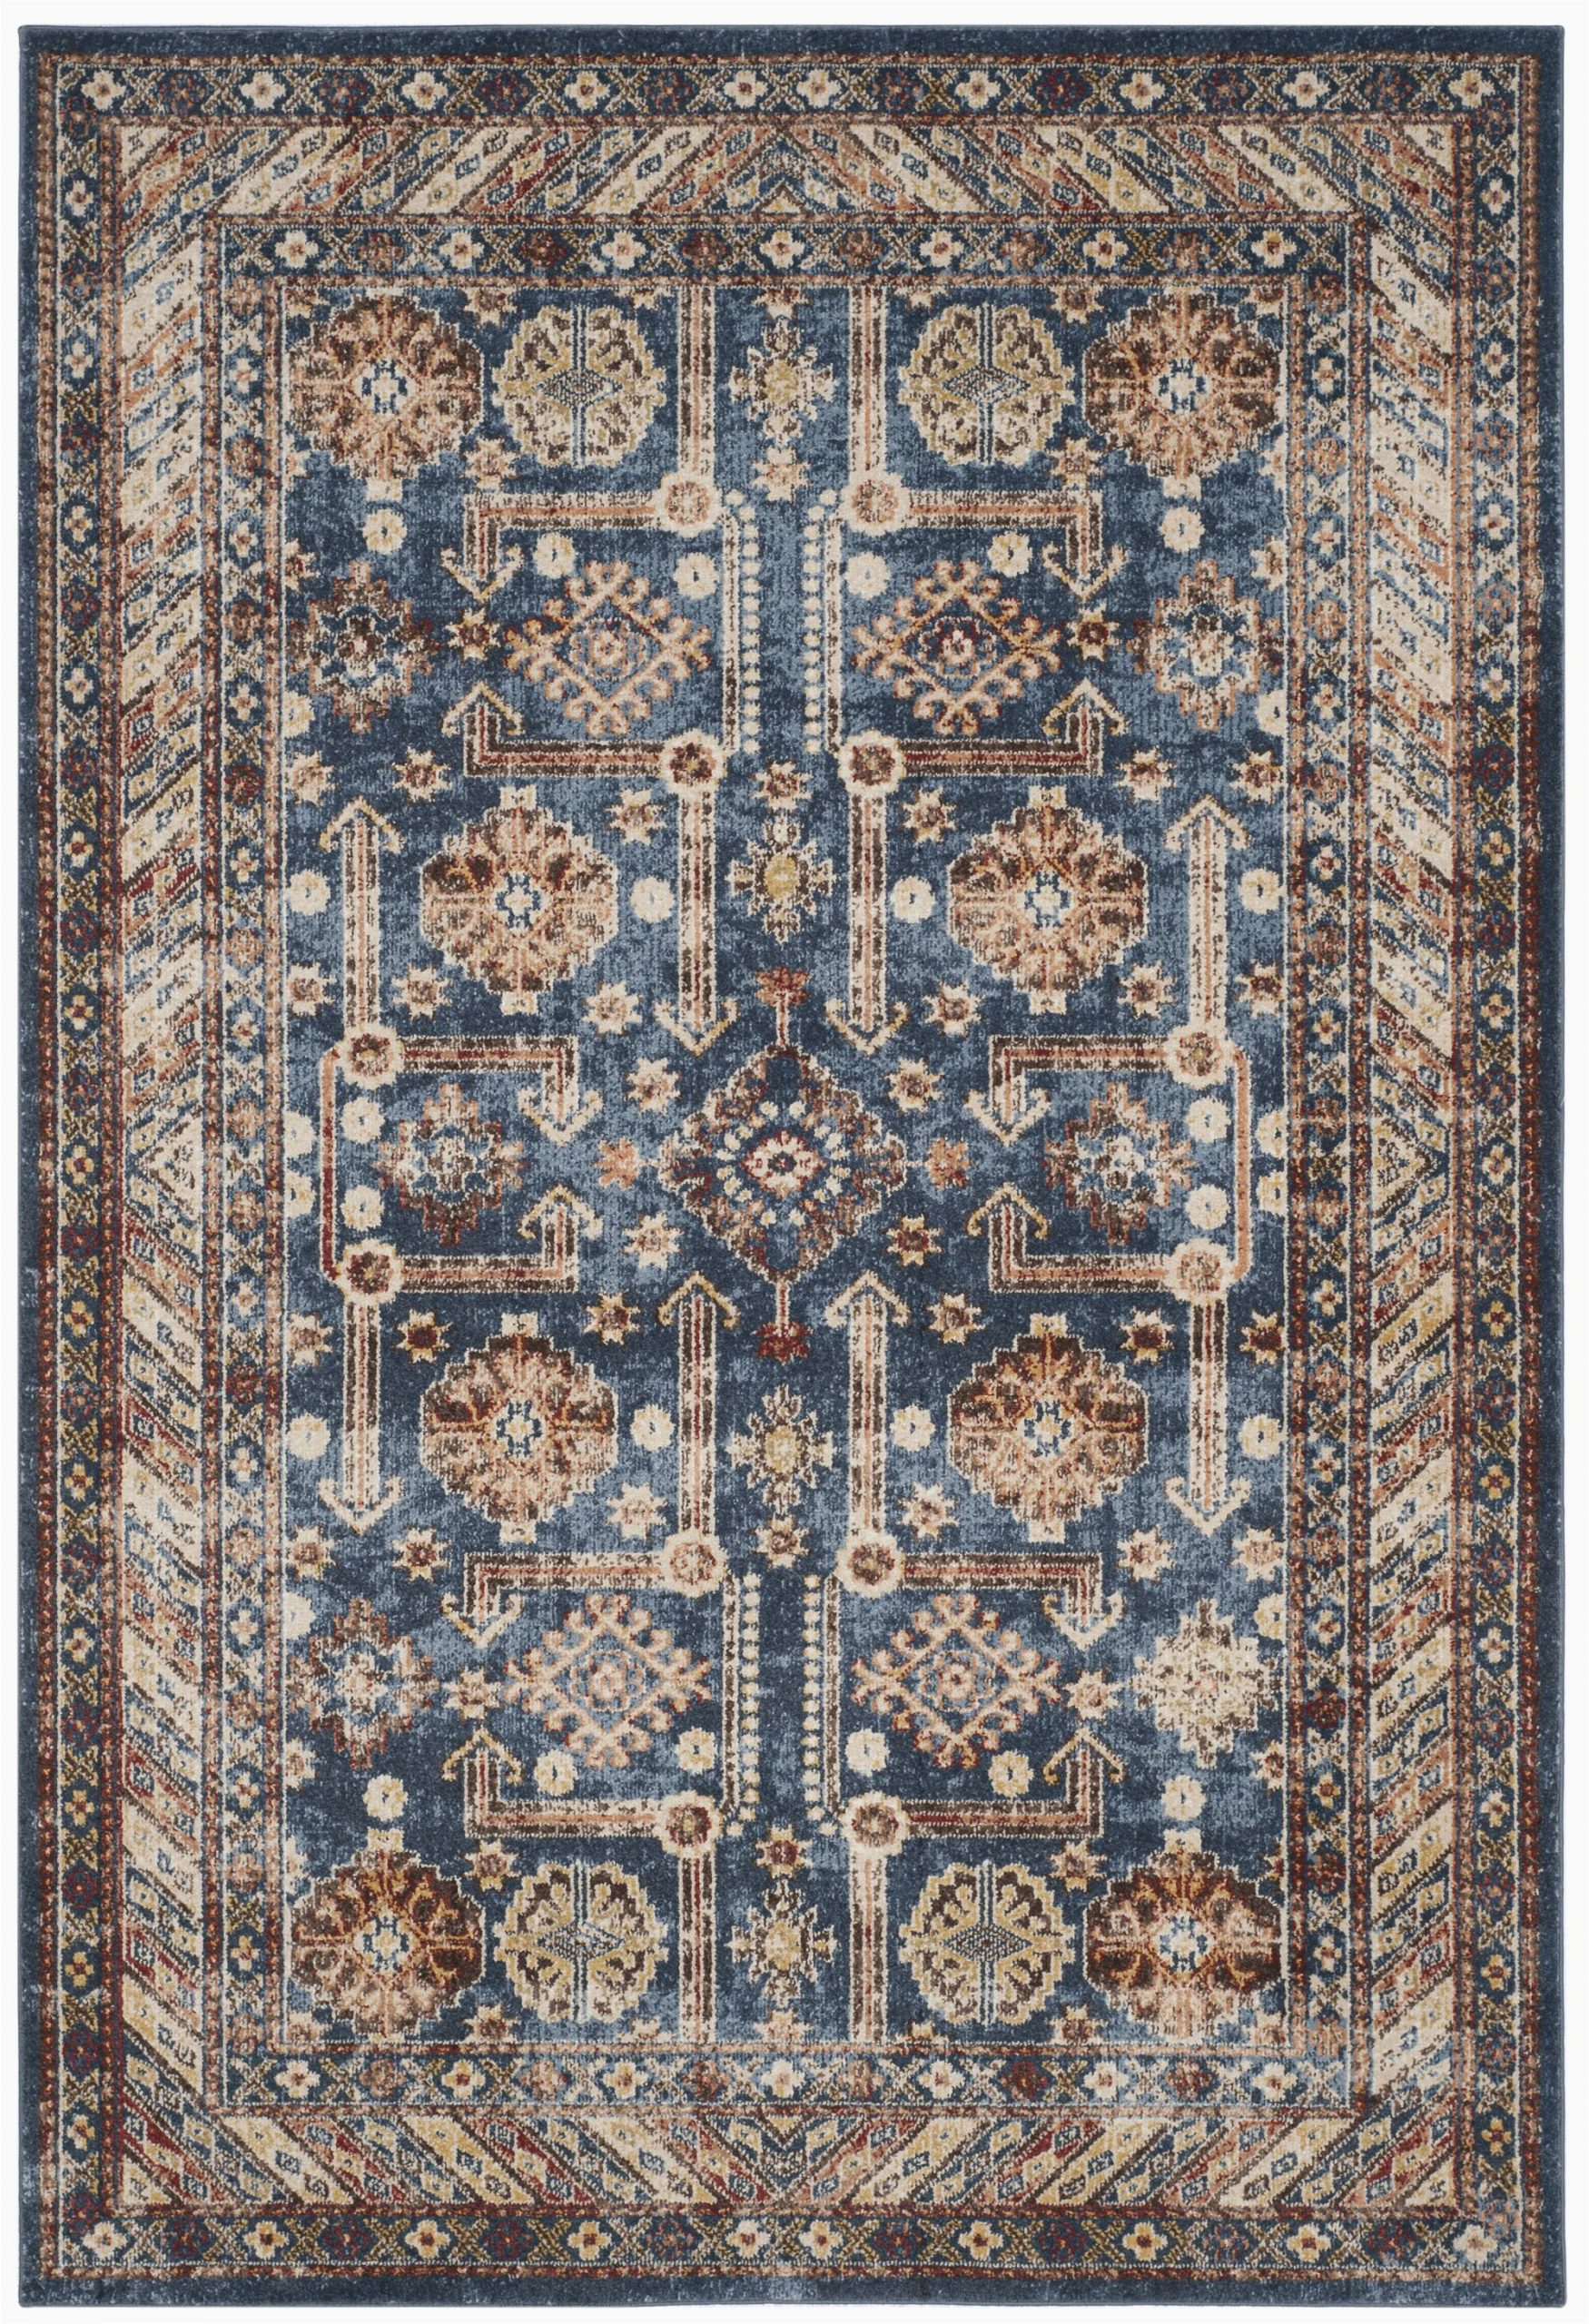 Isanotski Brown Blue area Rug isanotski Persian Inspired Brown Blue area Rug